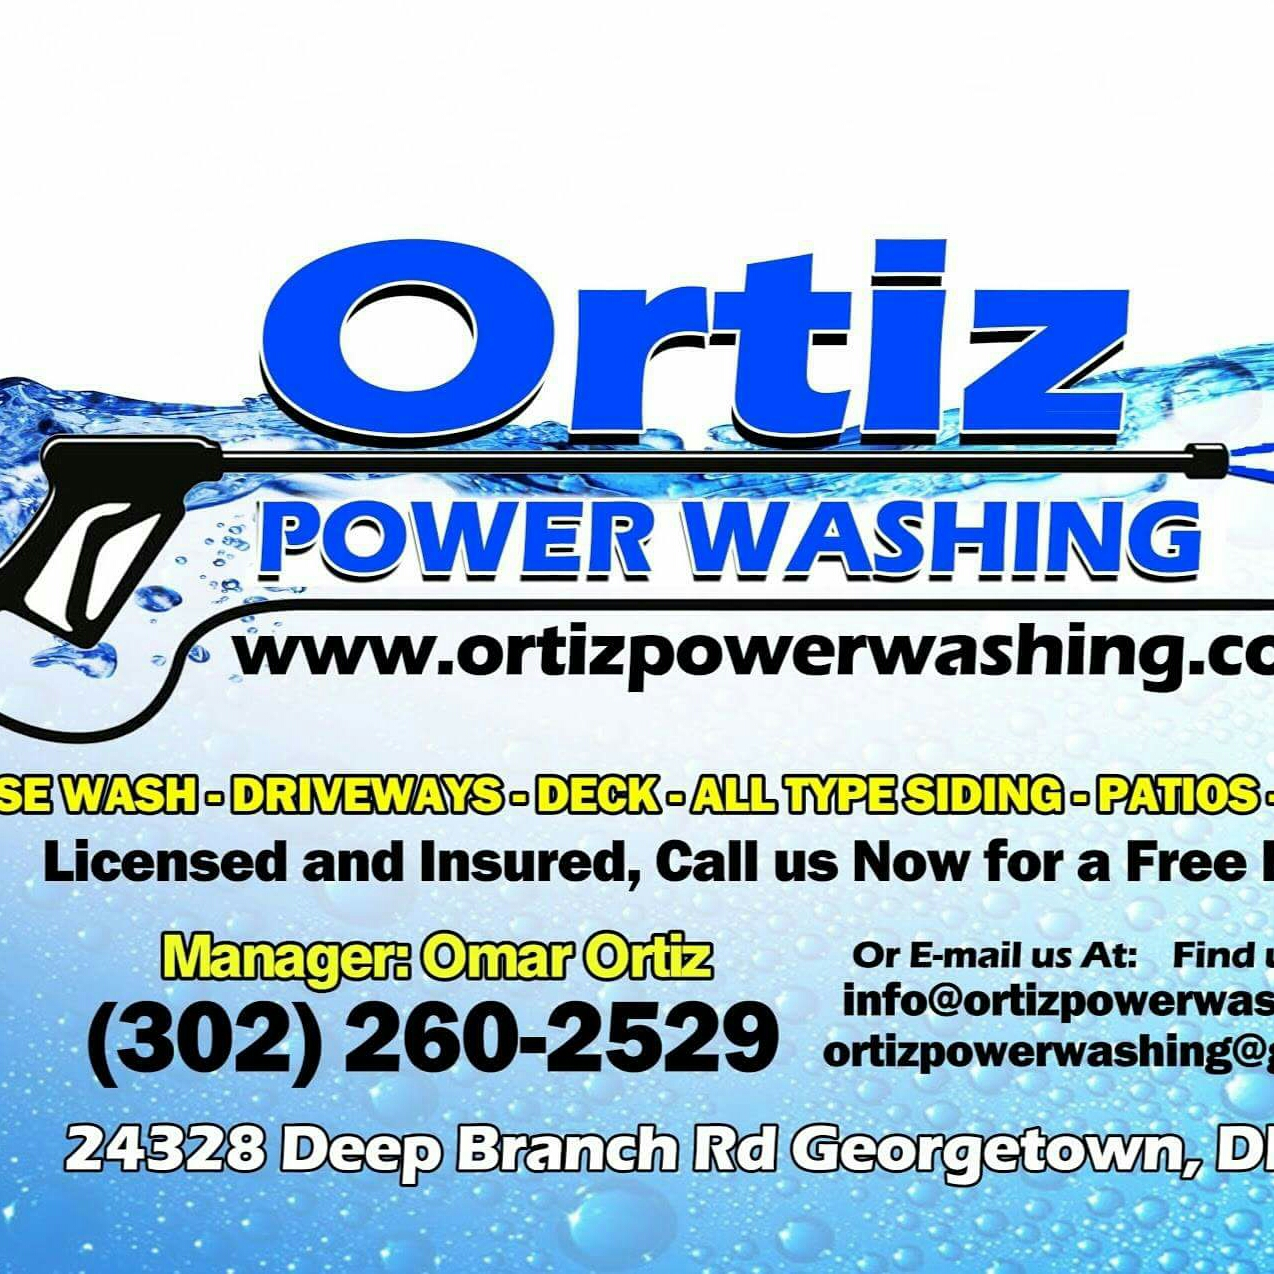 Ortiz Power Washing LLC